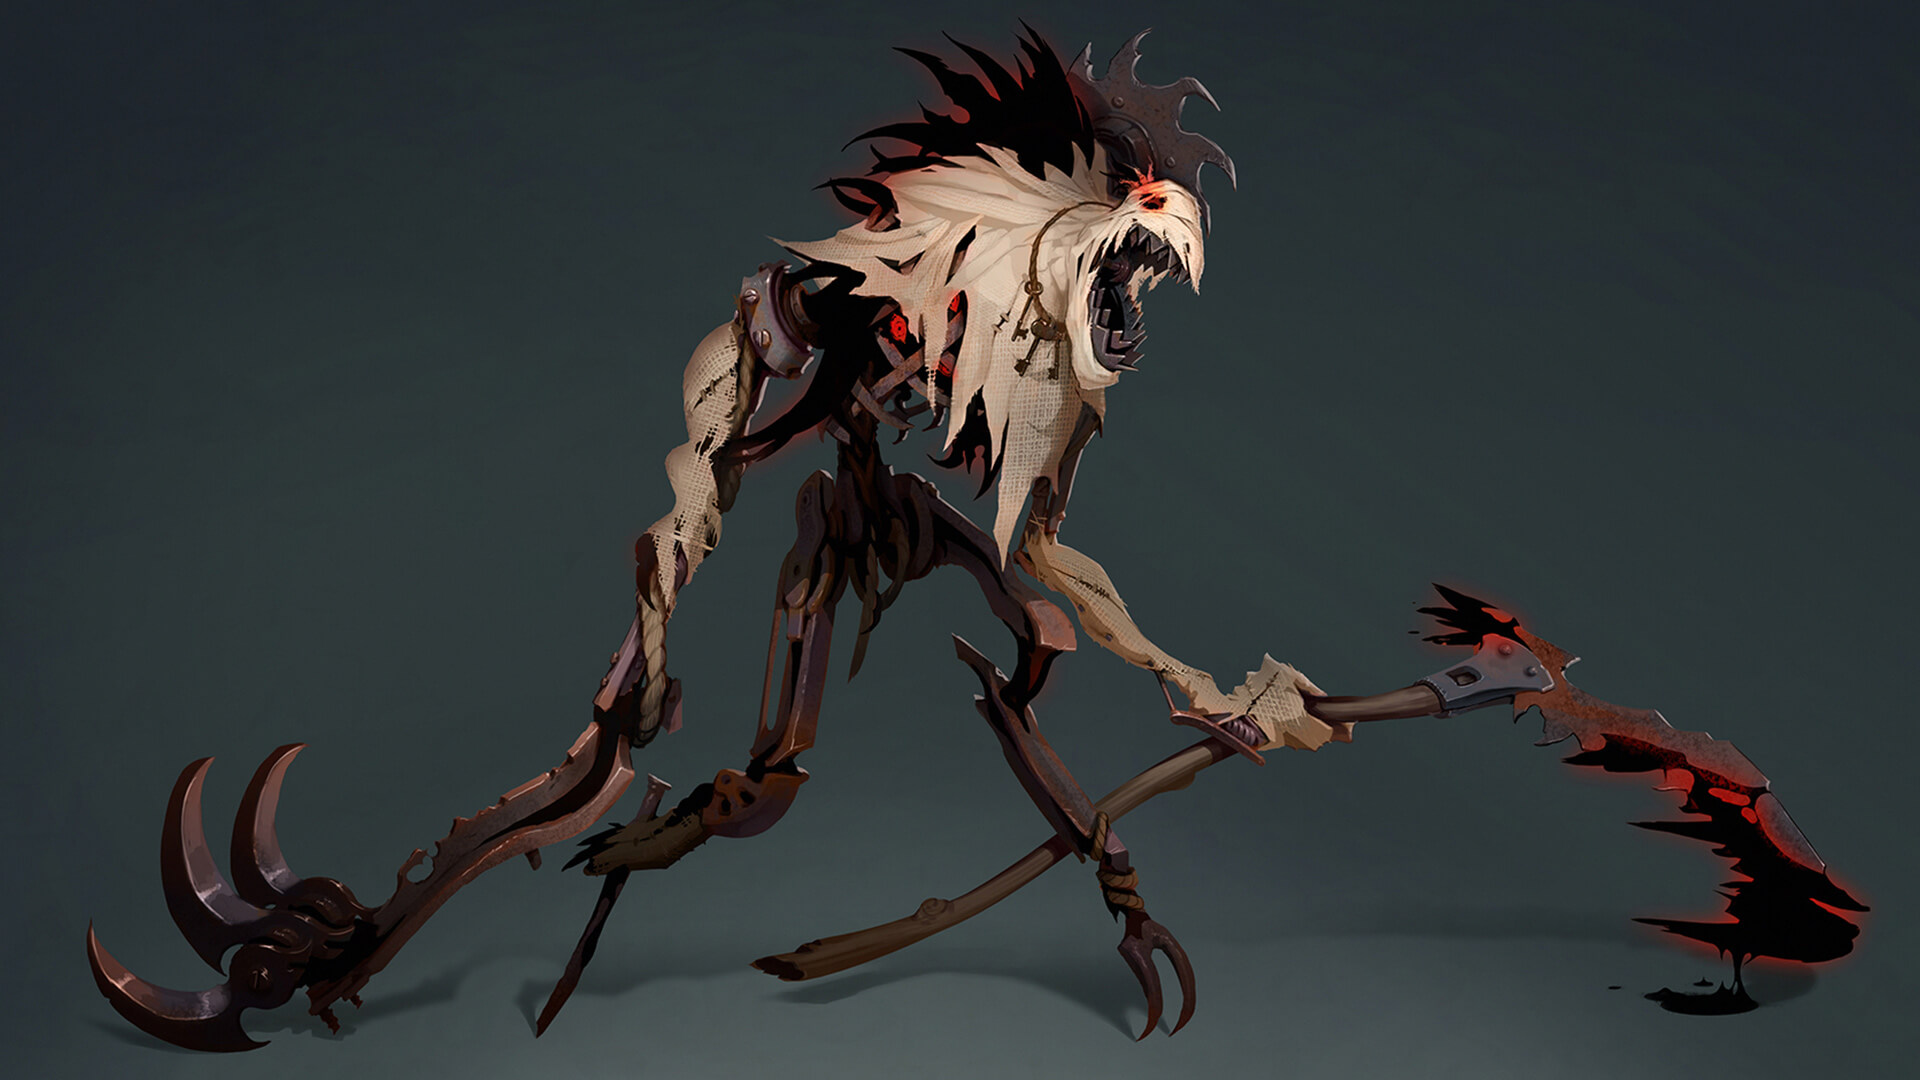 A model for Fiddlesticks' visual update in League of Legends